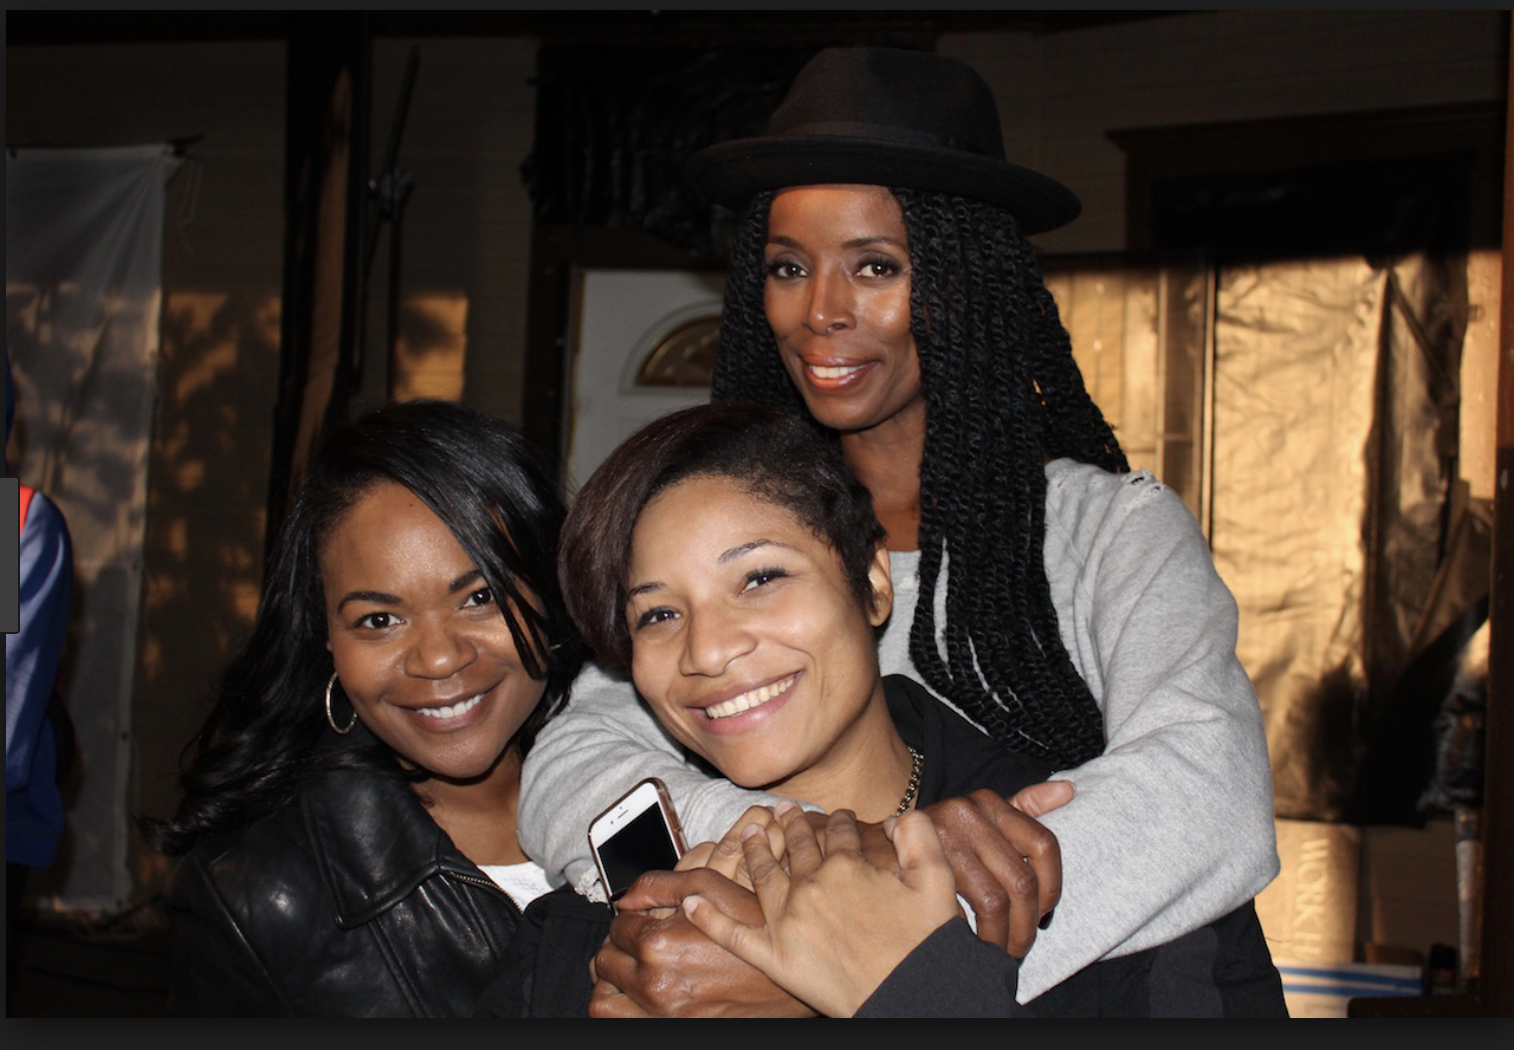 Tasha Smith and Tosha Whitten-Griggs on the set of When Love Kills: The Falicia Blakely Story that Tasha directed